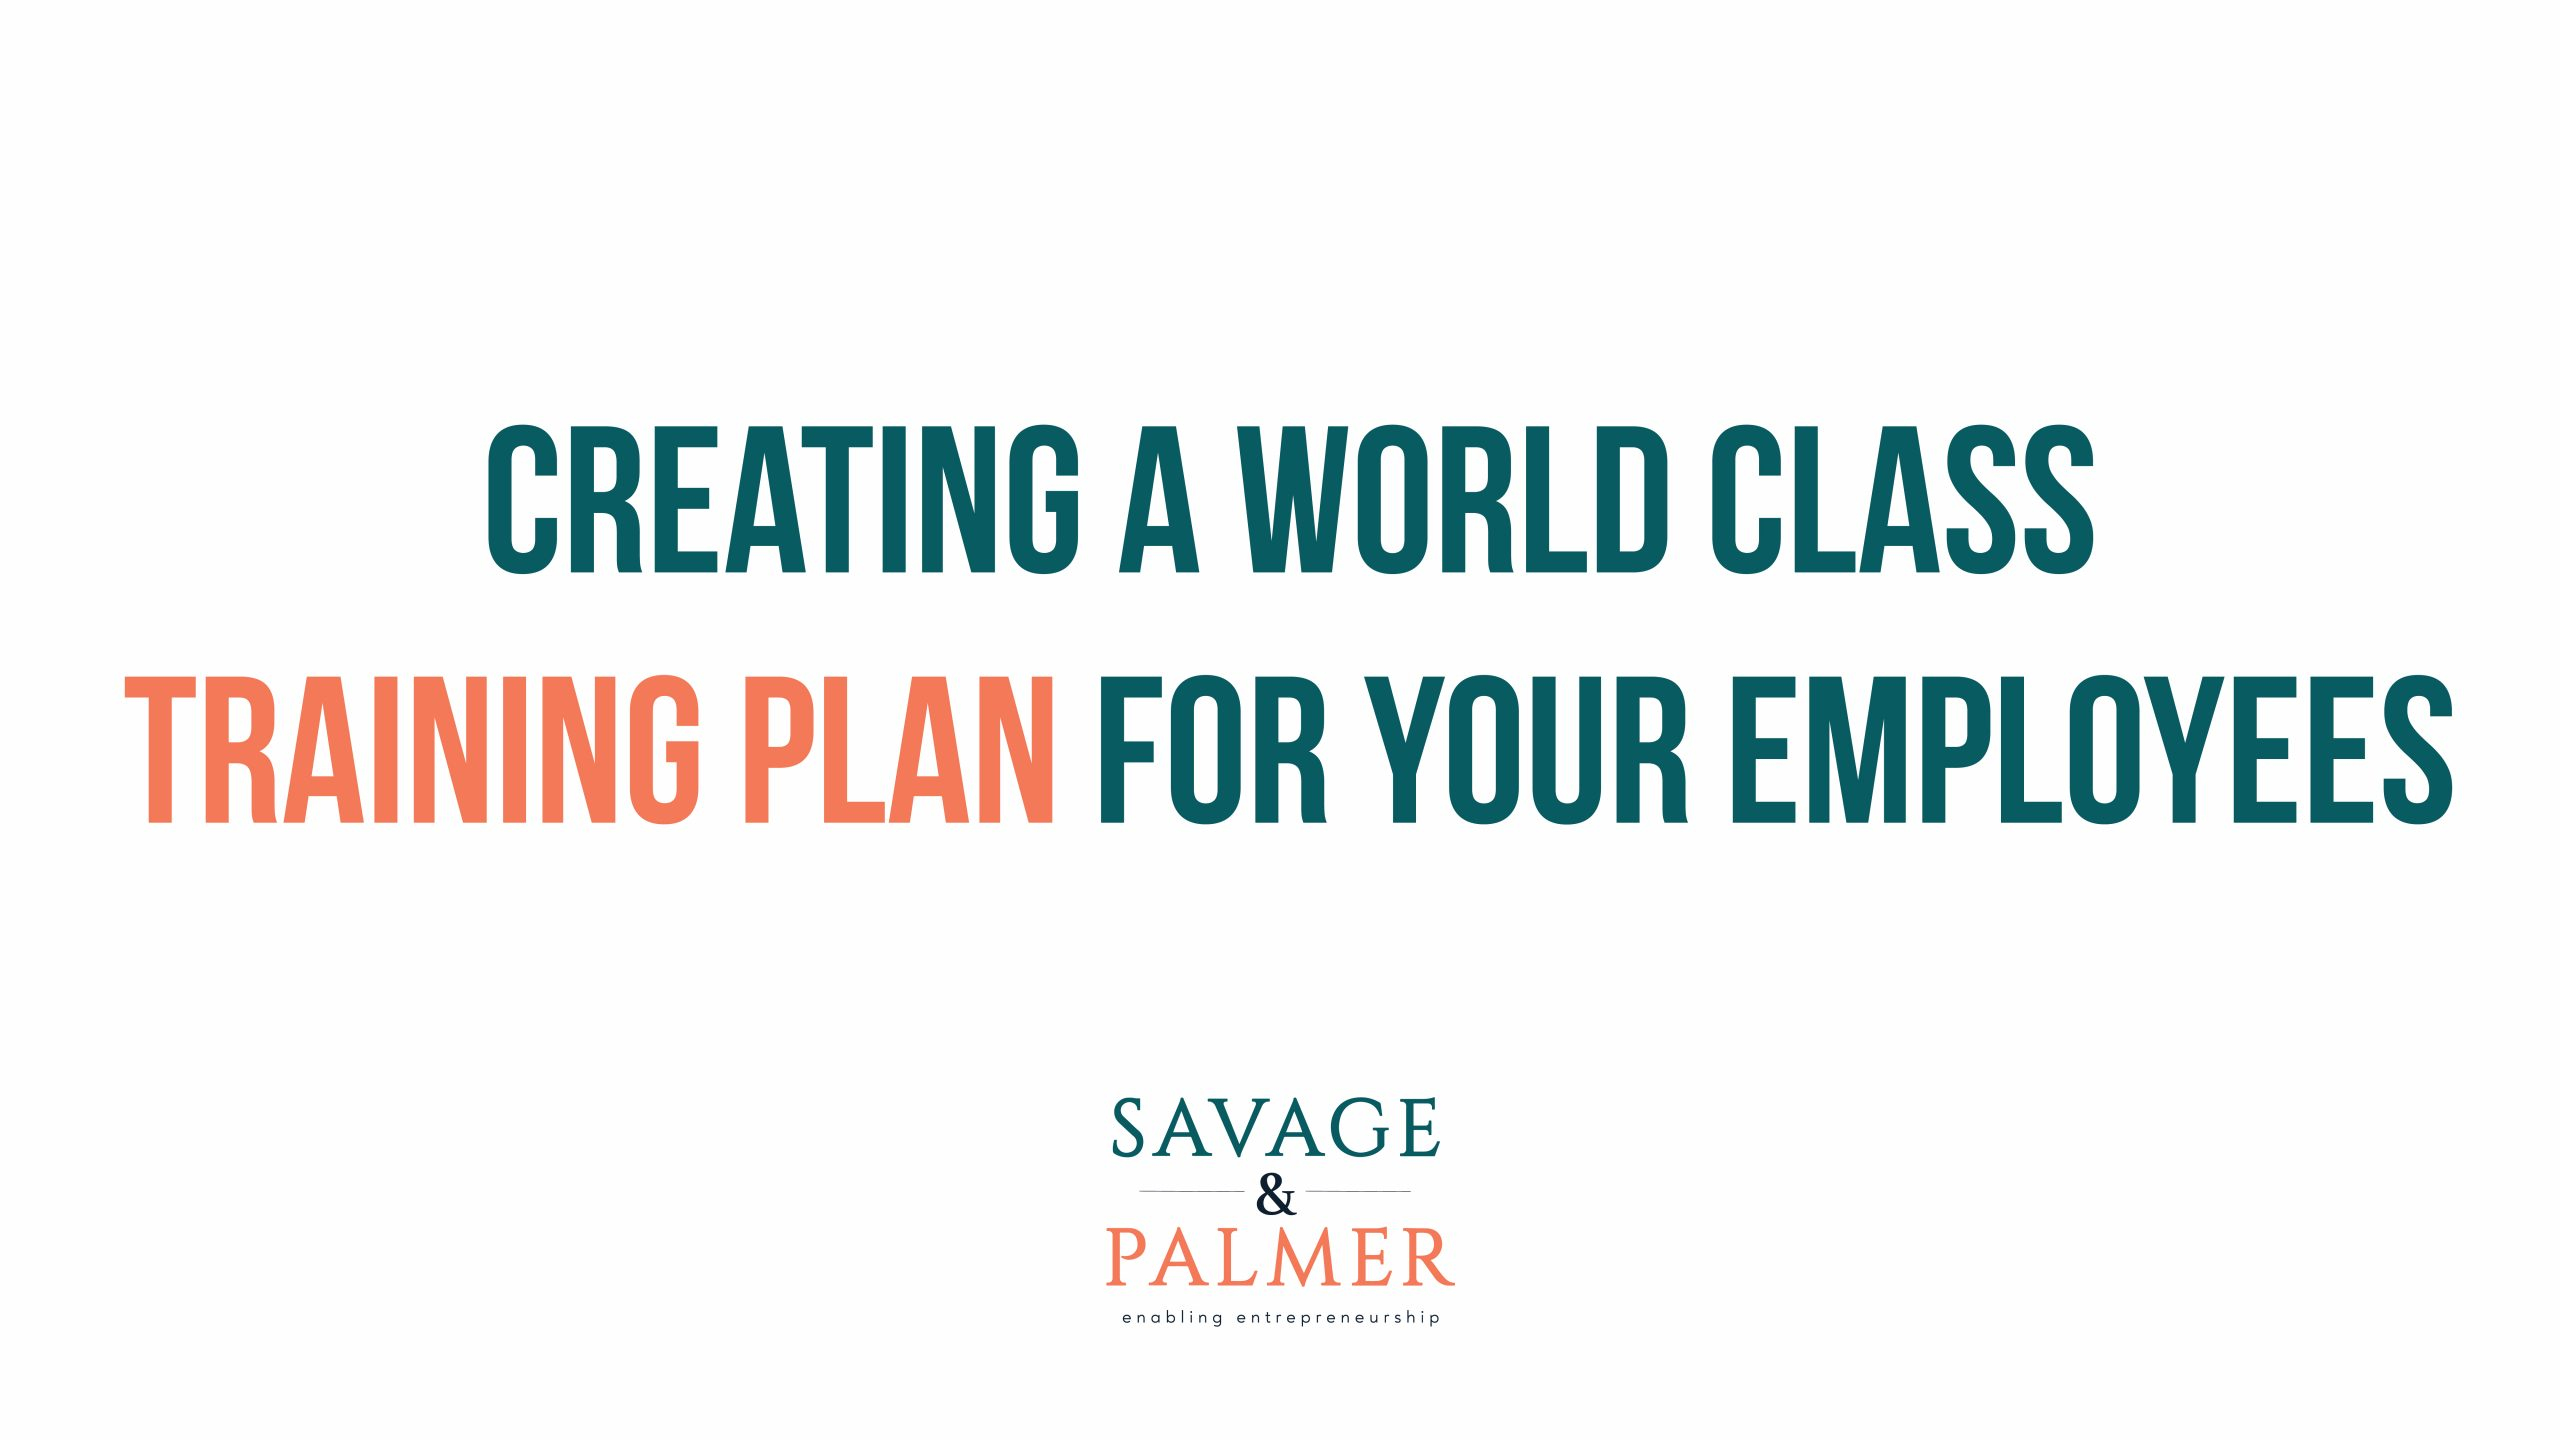 Training plan for your employee